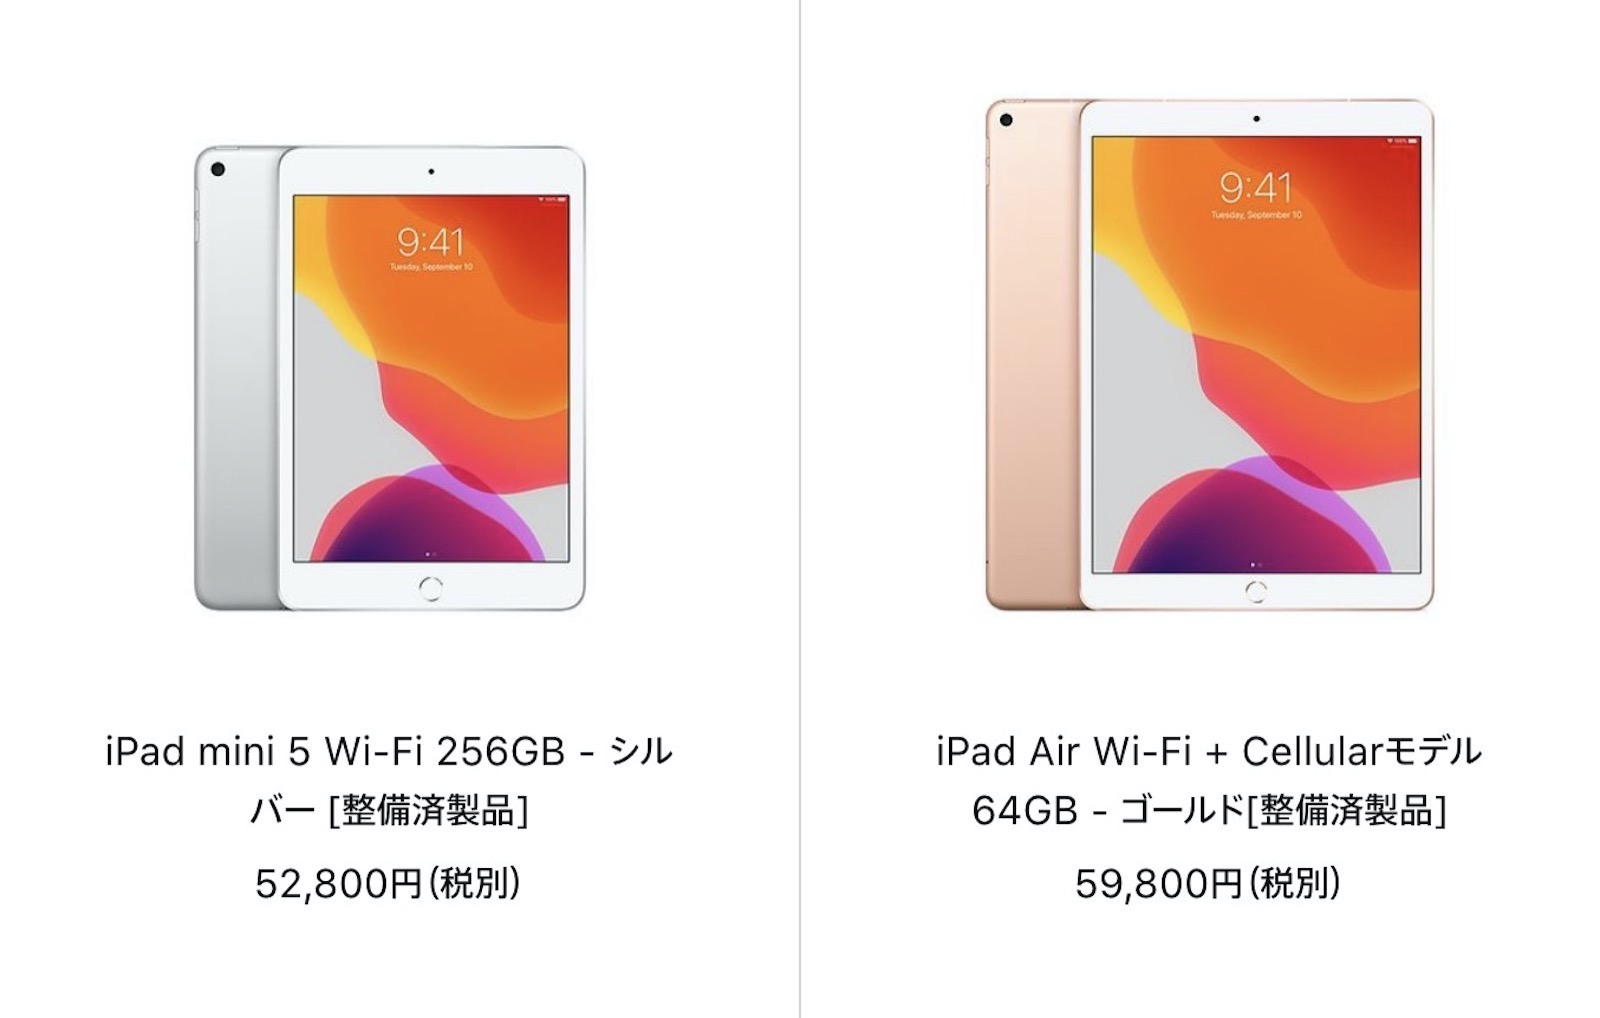 Ipad refurbished models